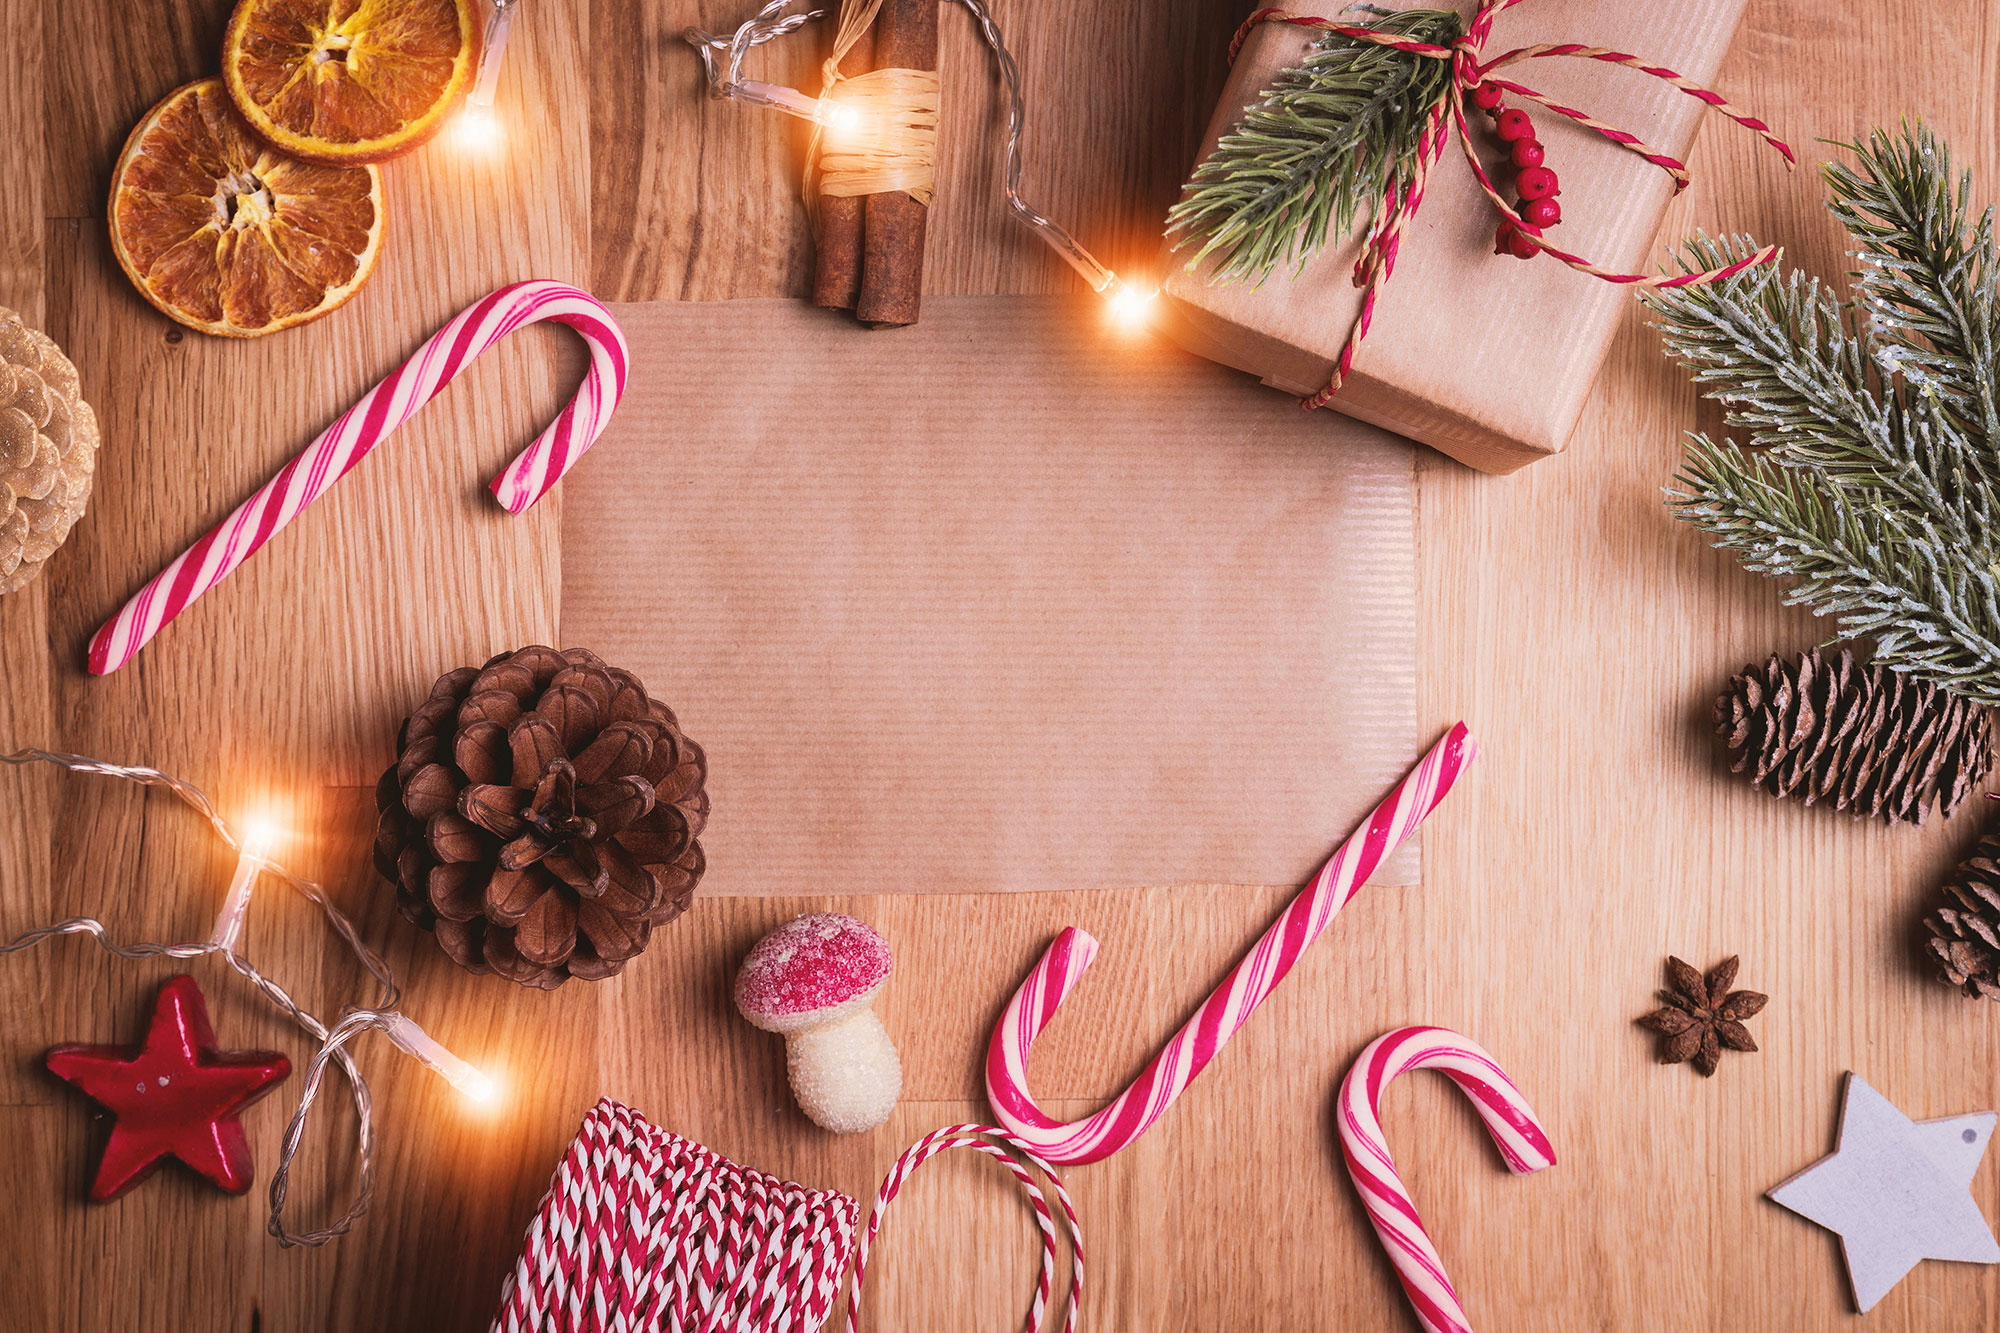 10 Holiday Apartment Decorating Tips (that Won't Get You in Trouble with Your Landlord)